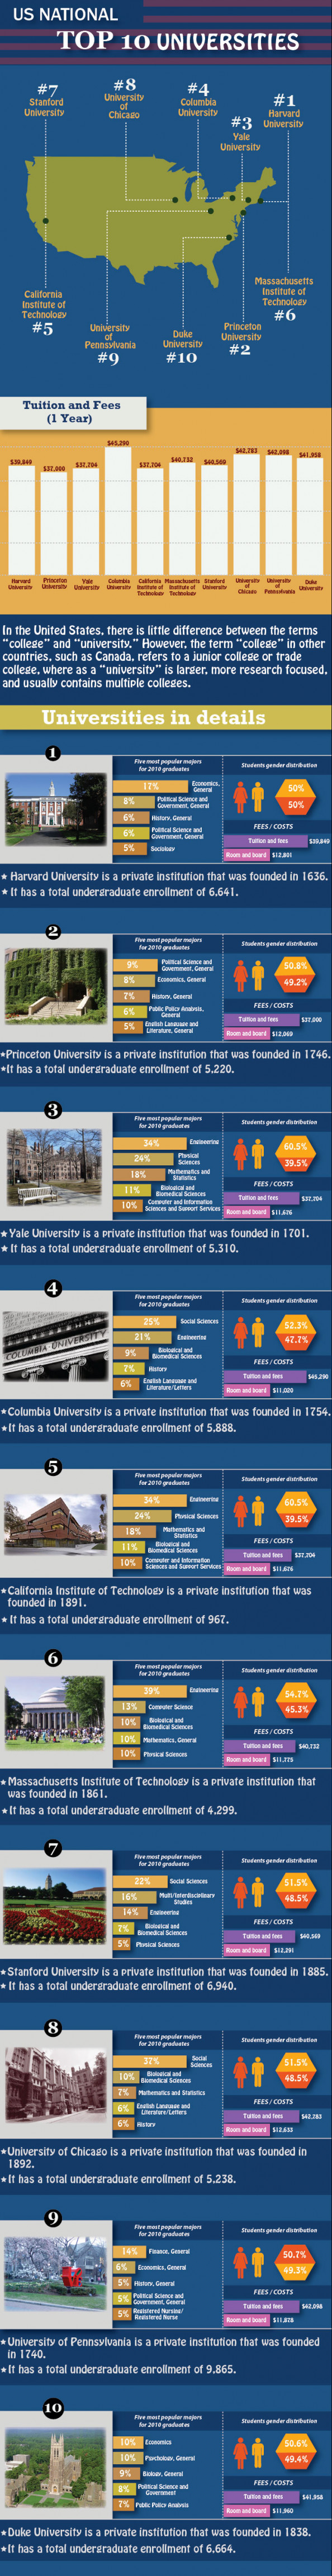 Top 10 US Universities Infographic